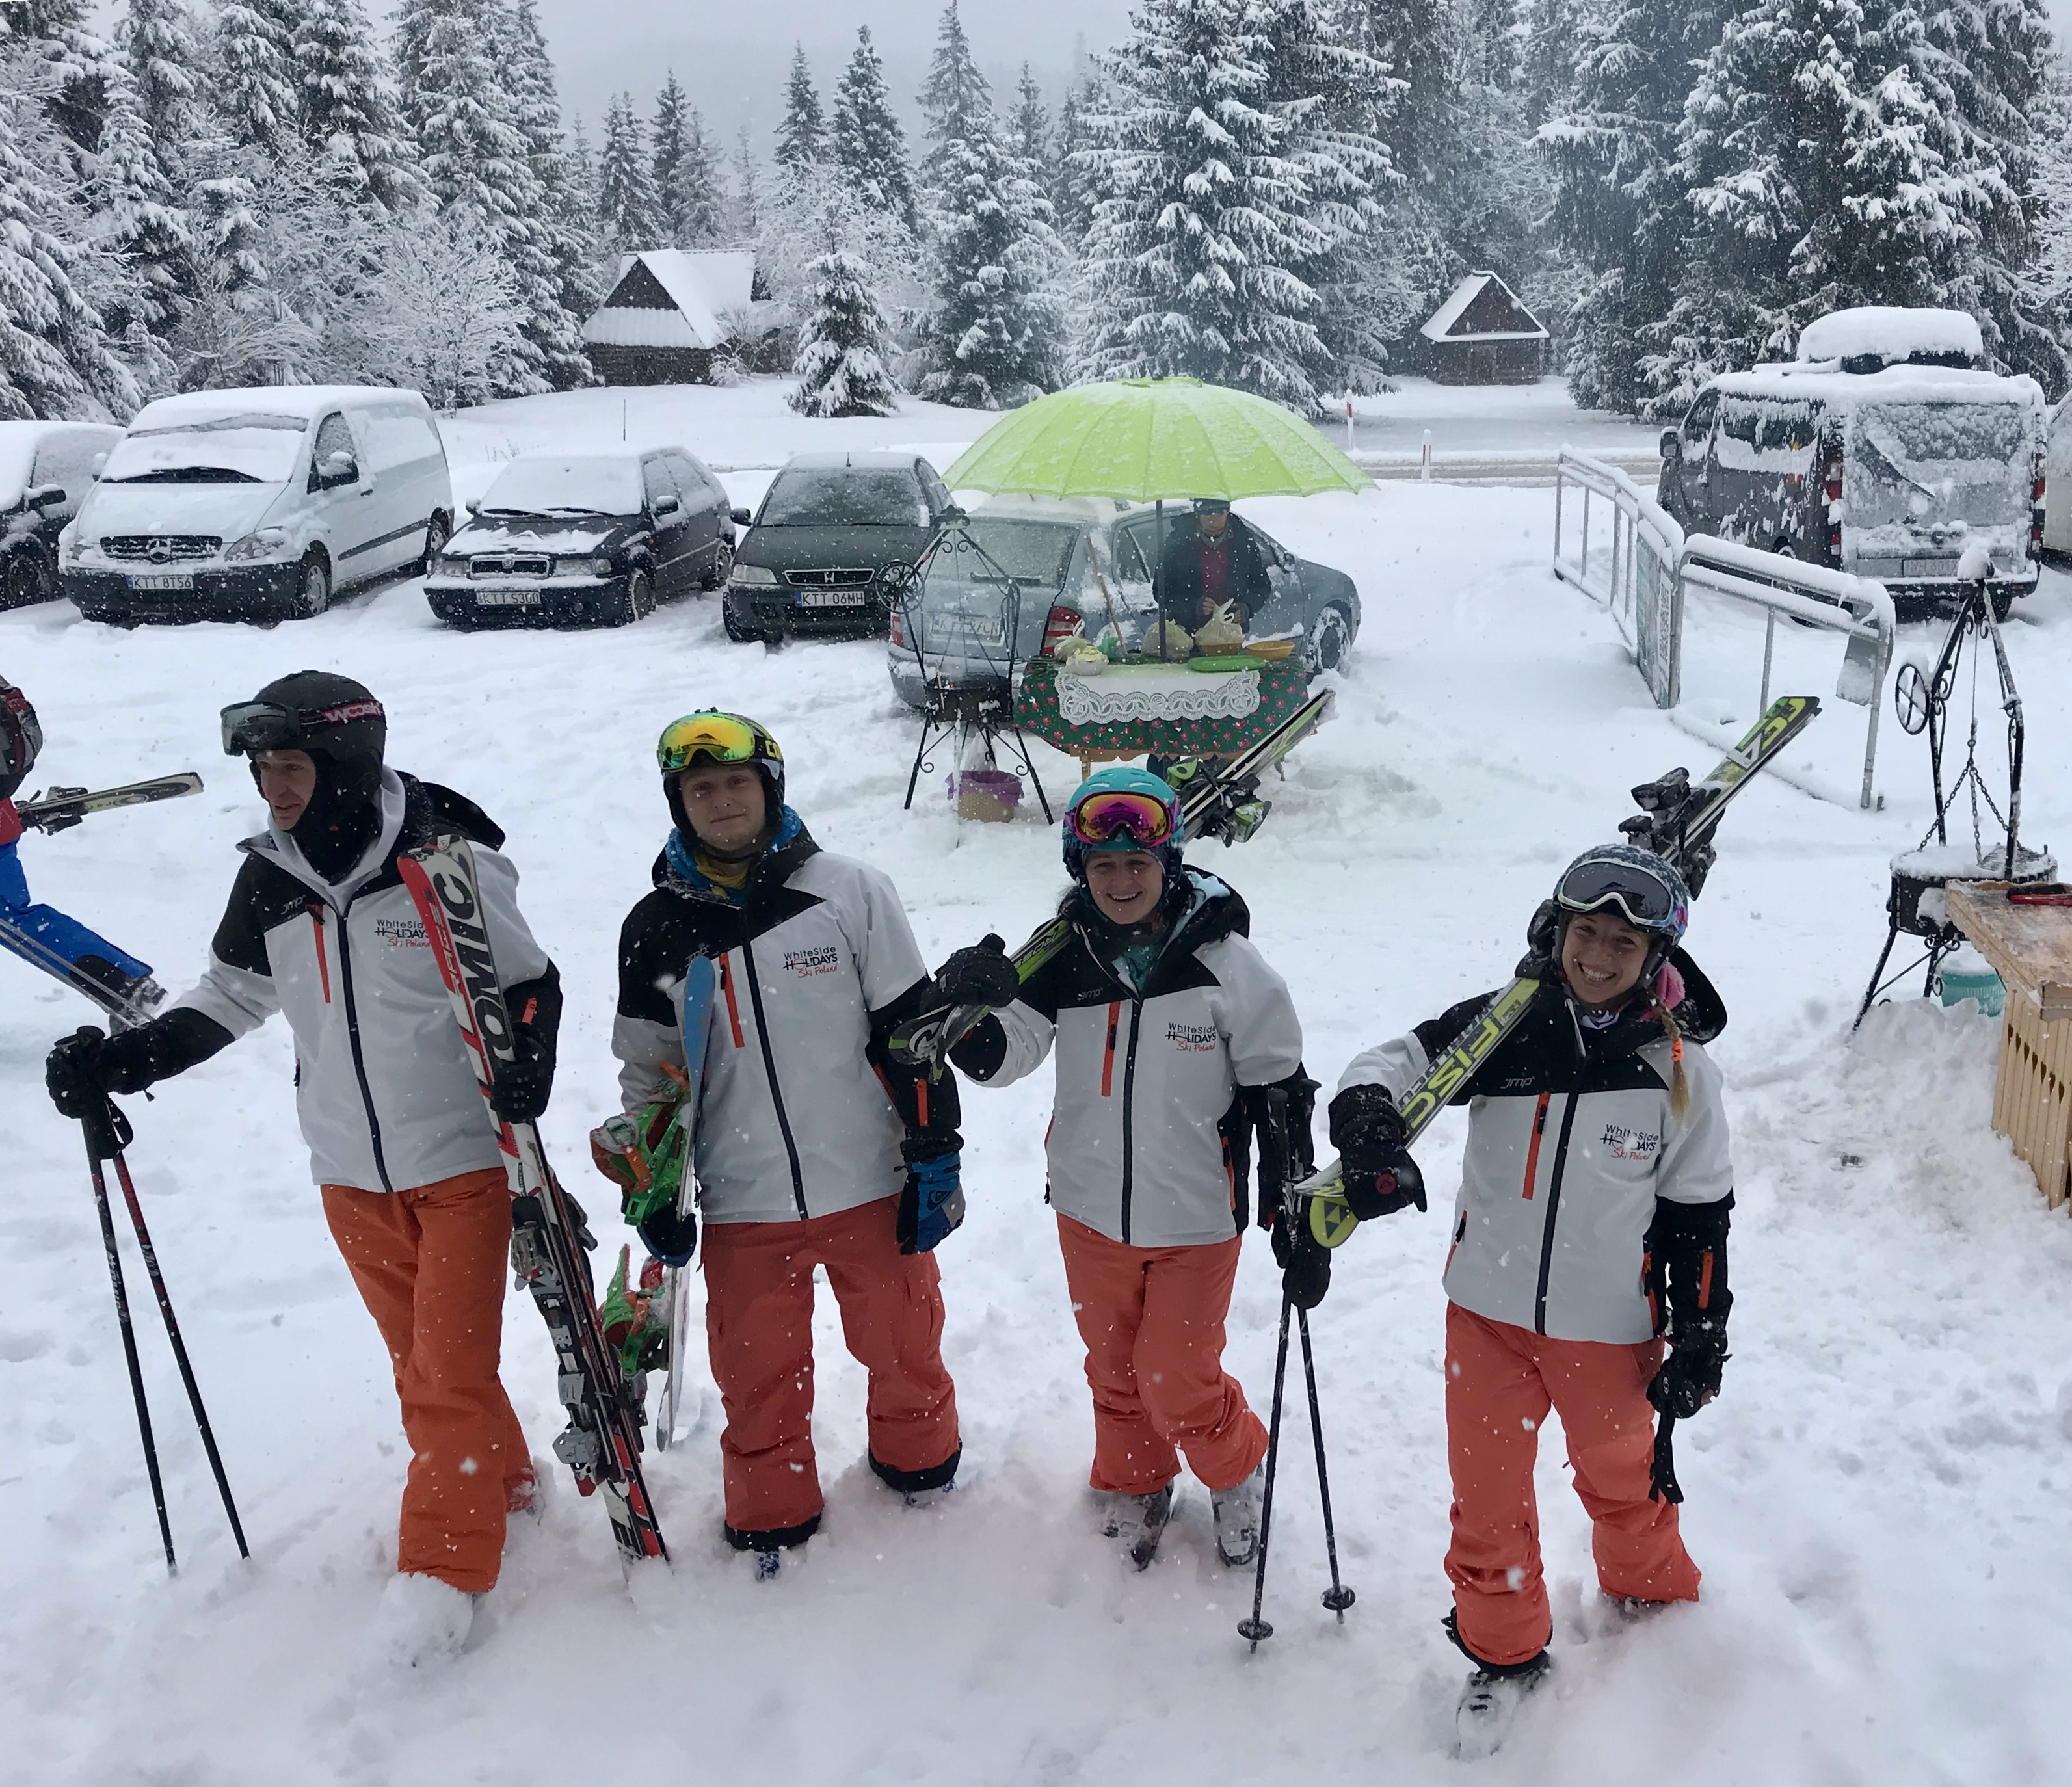 Some of our instructor team rocking up to work on a snowy morning at Jurgow